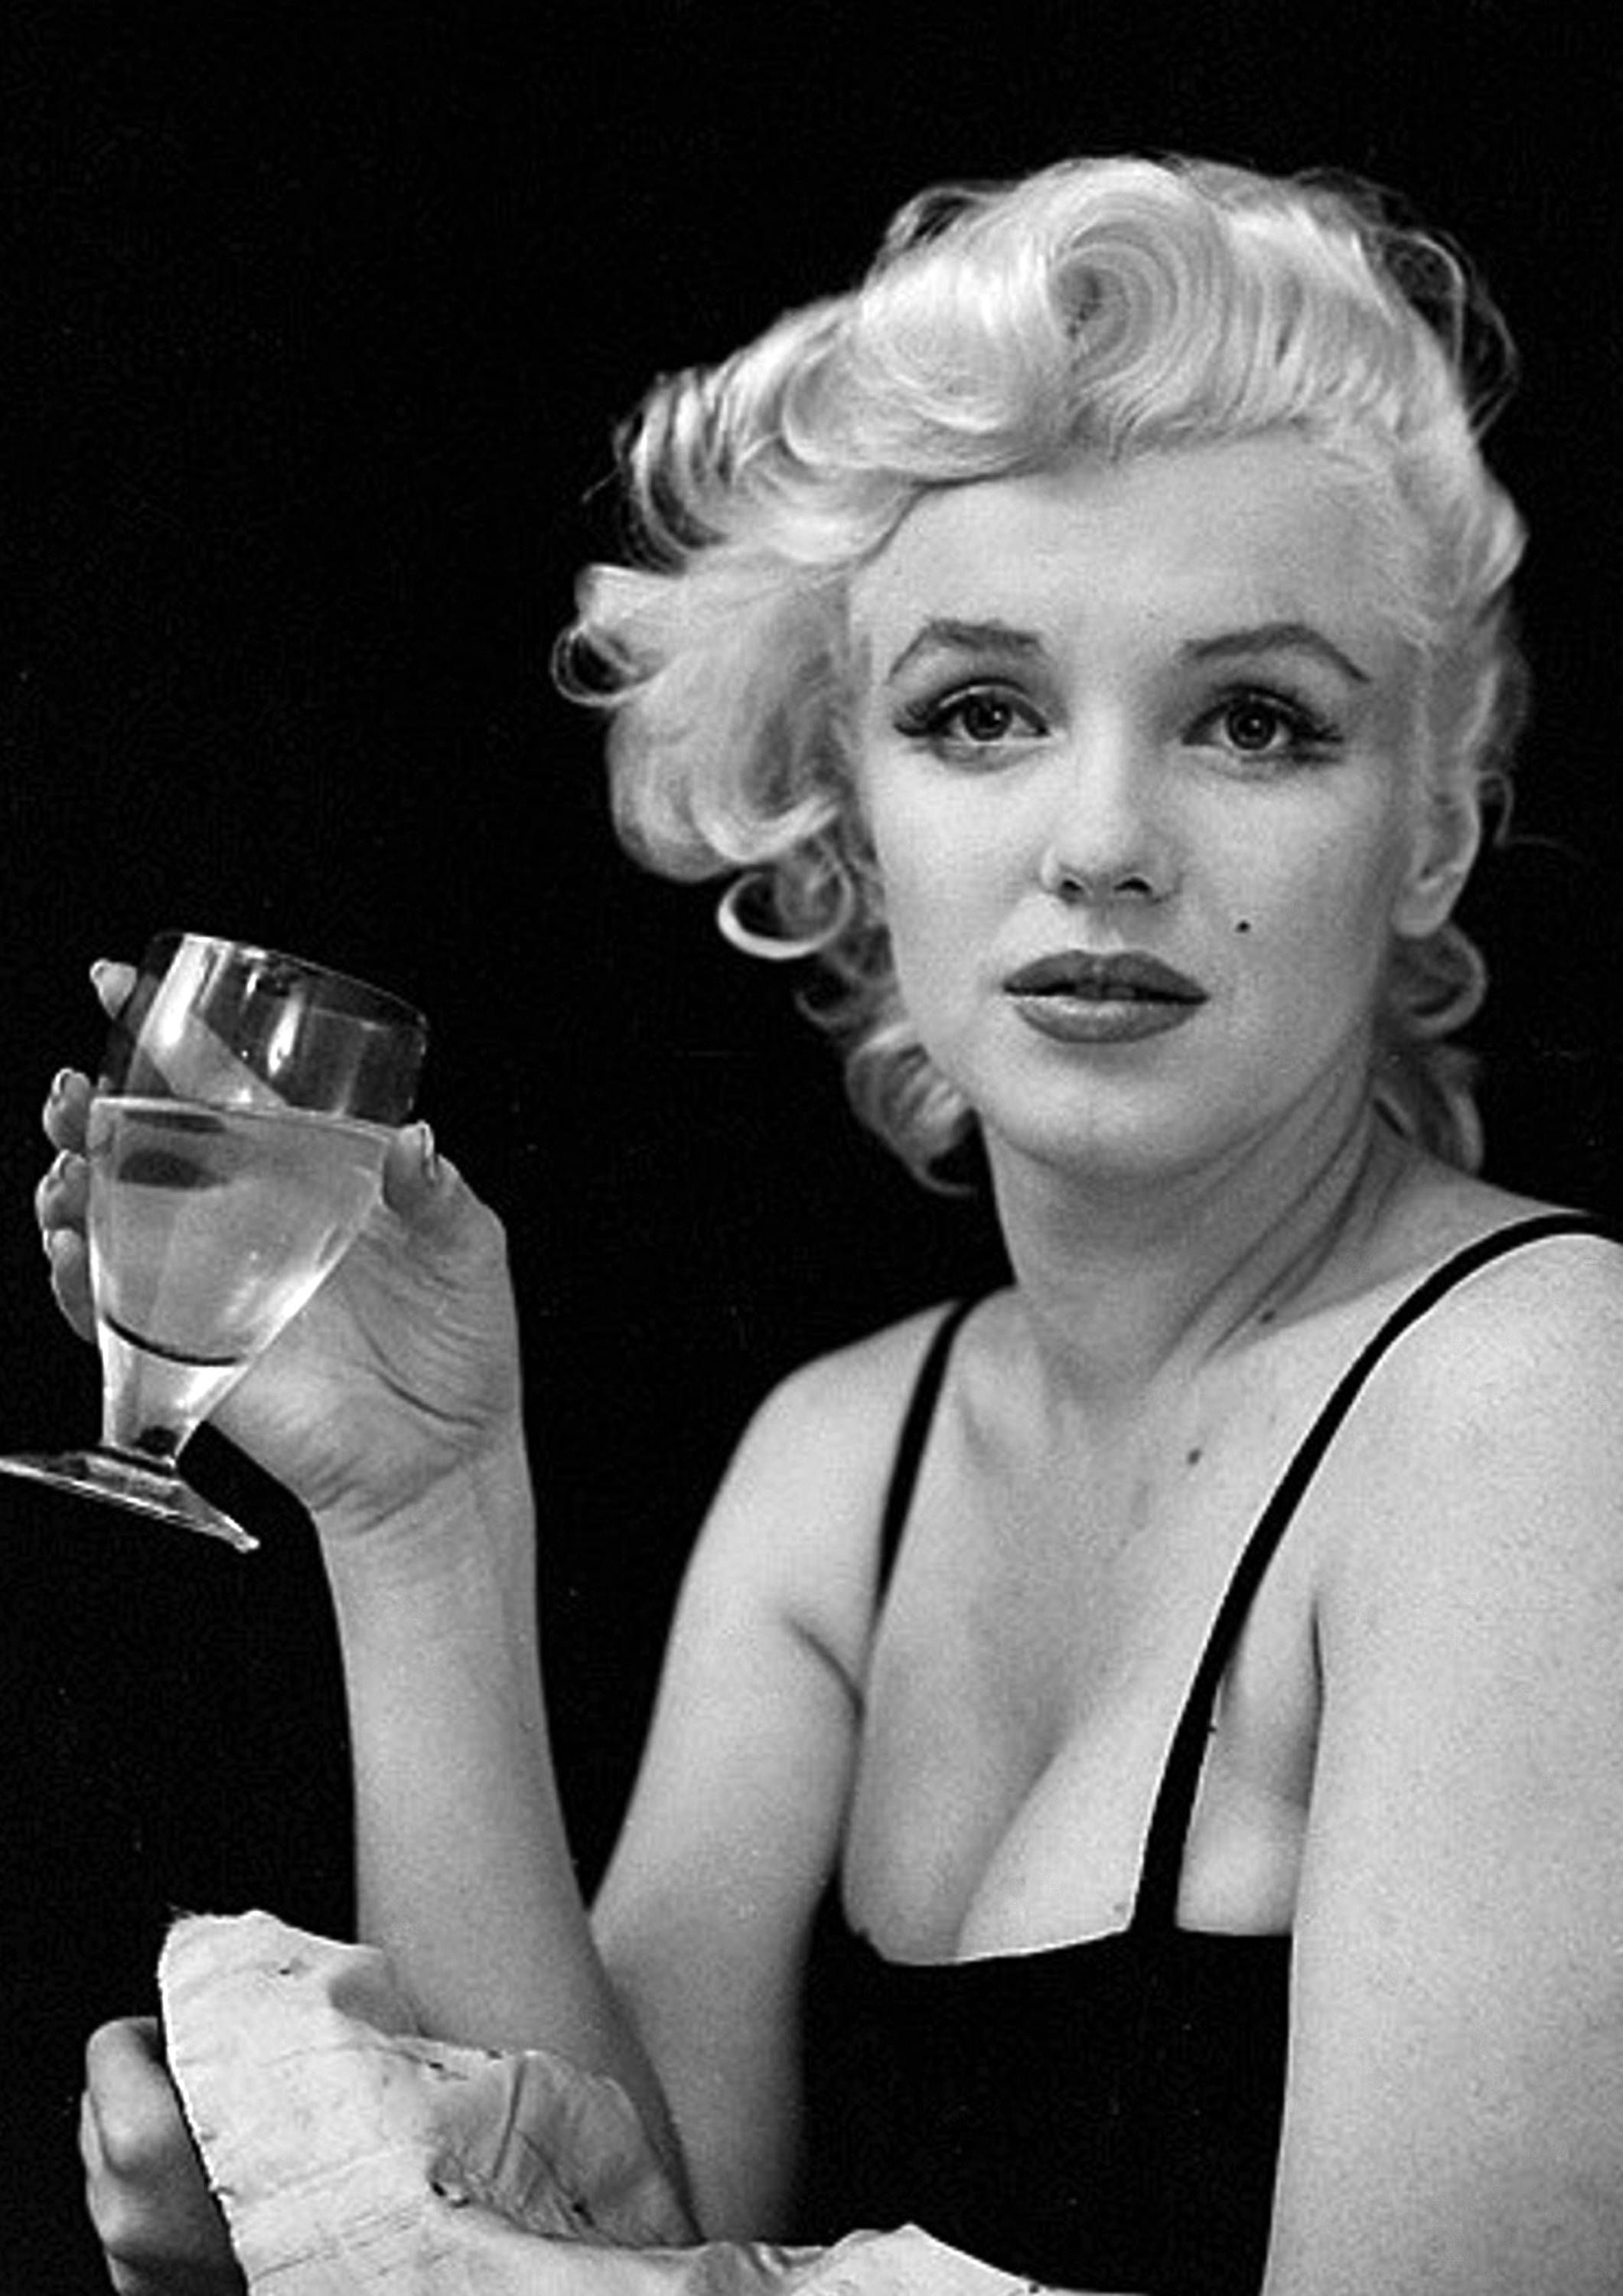 Marilyn Monroe Monochrome Photographic Print 72 (A4 Size - 210mm x ...